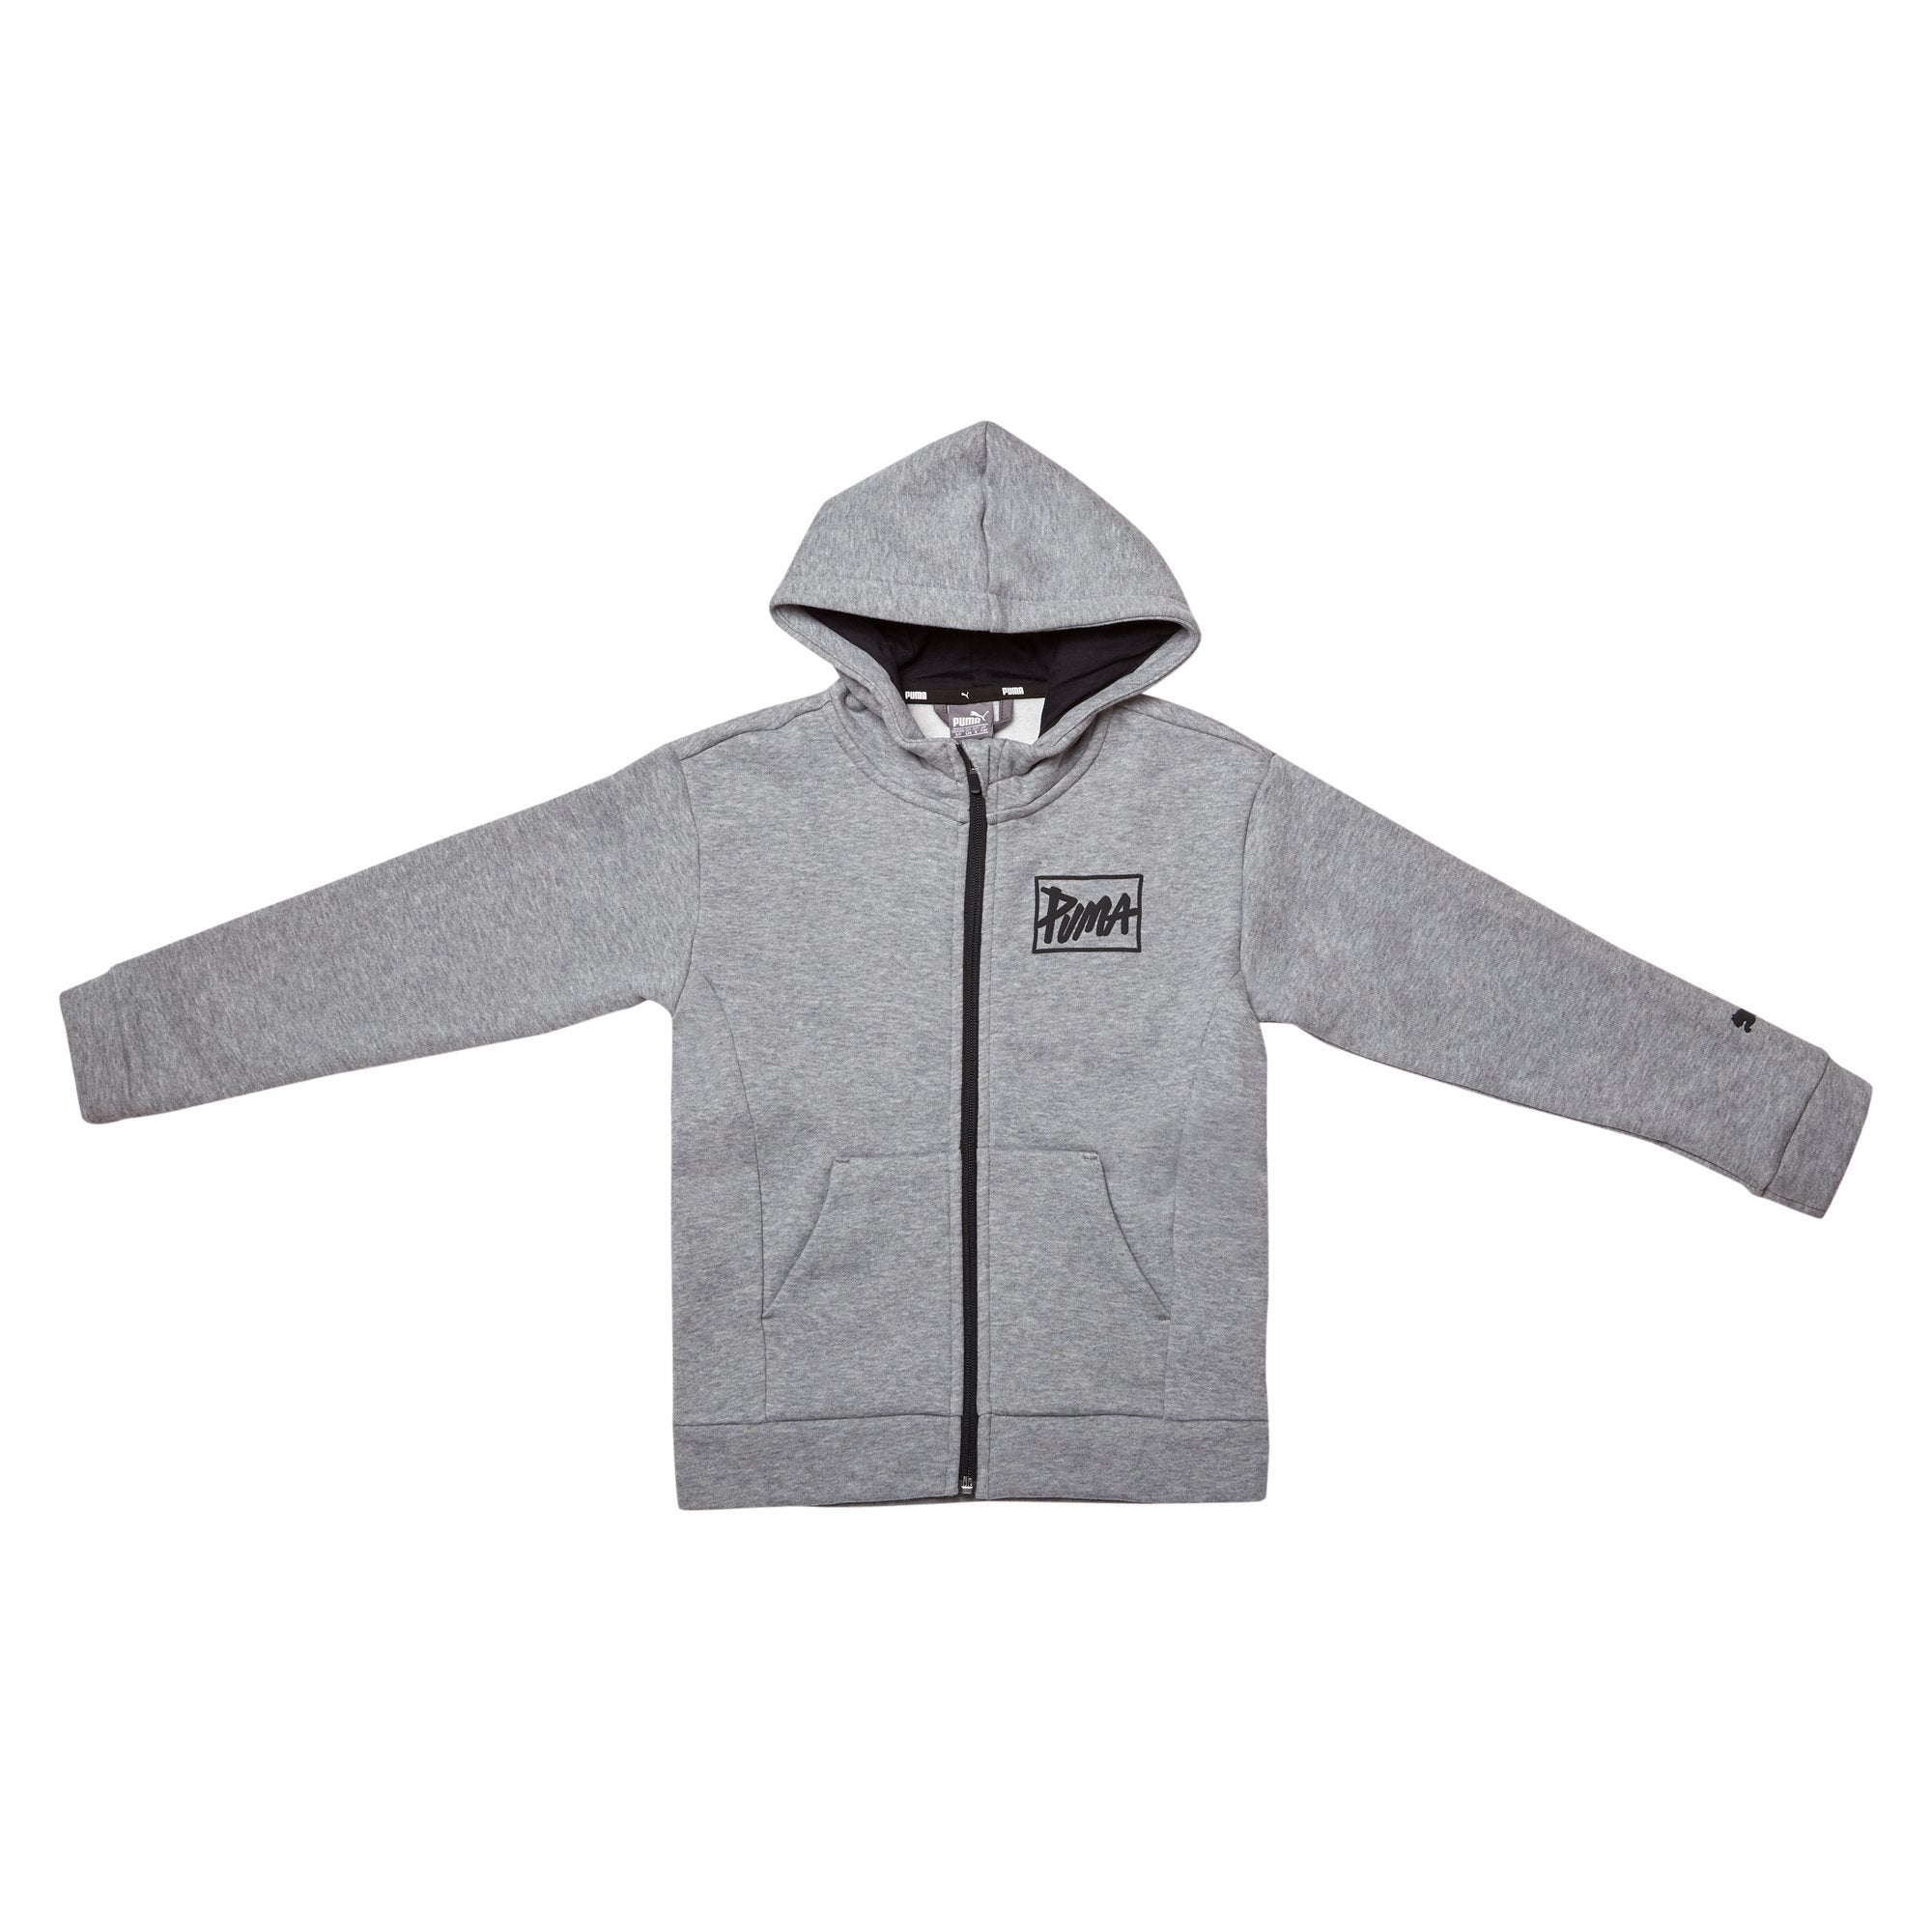 Puma Juniors Style Full Zip Hoodie - Medium Grey Heather Apparel Puma  (2122603561019)